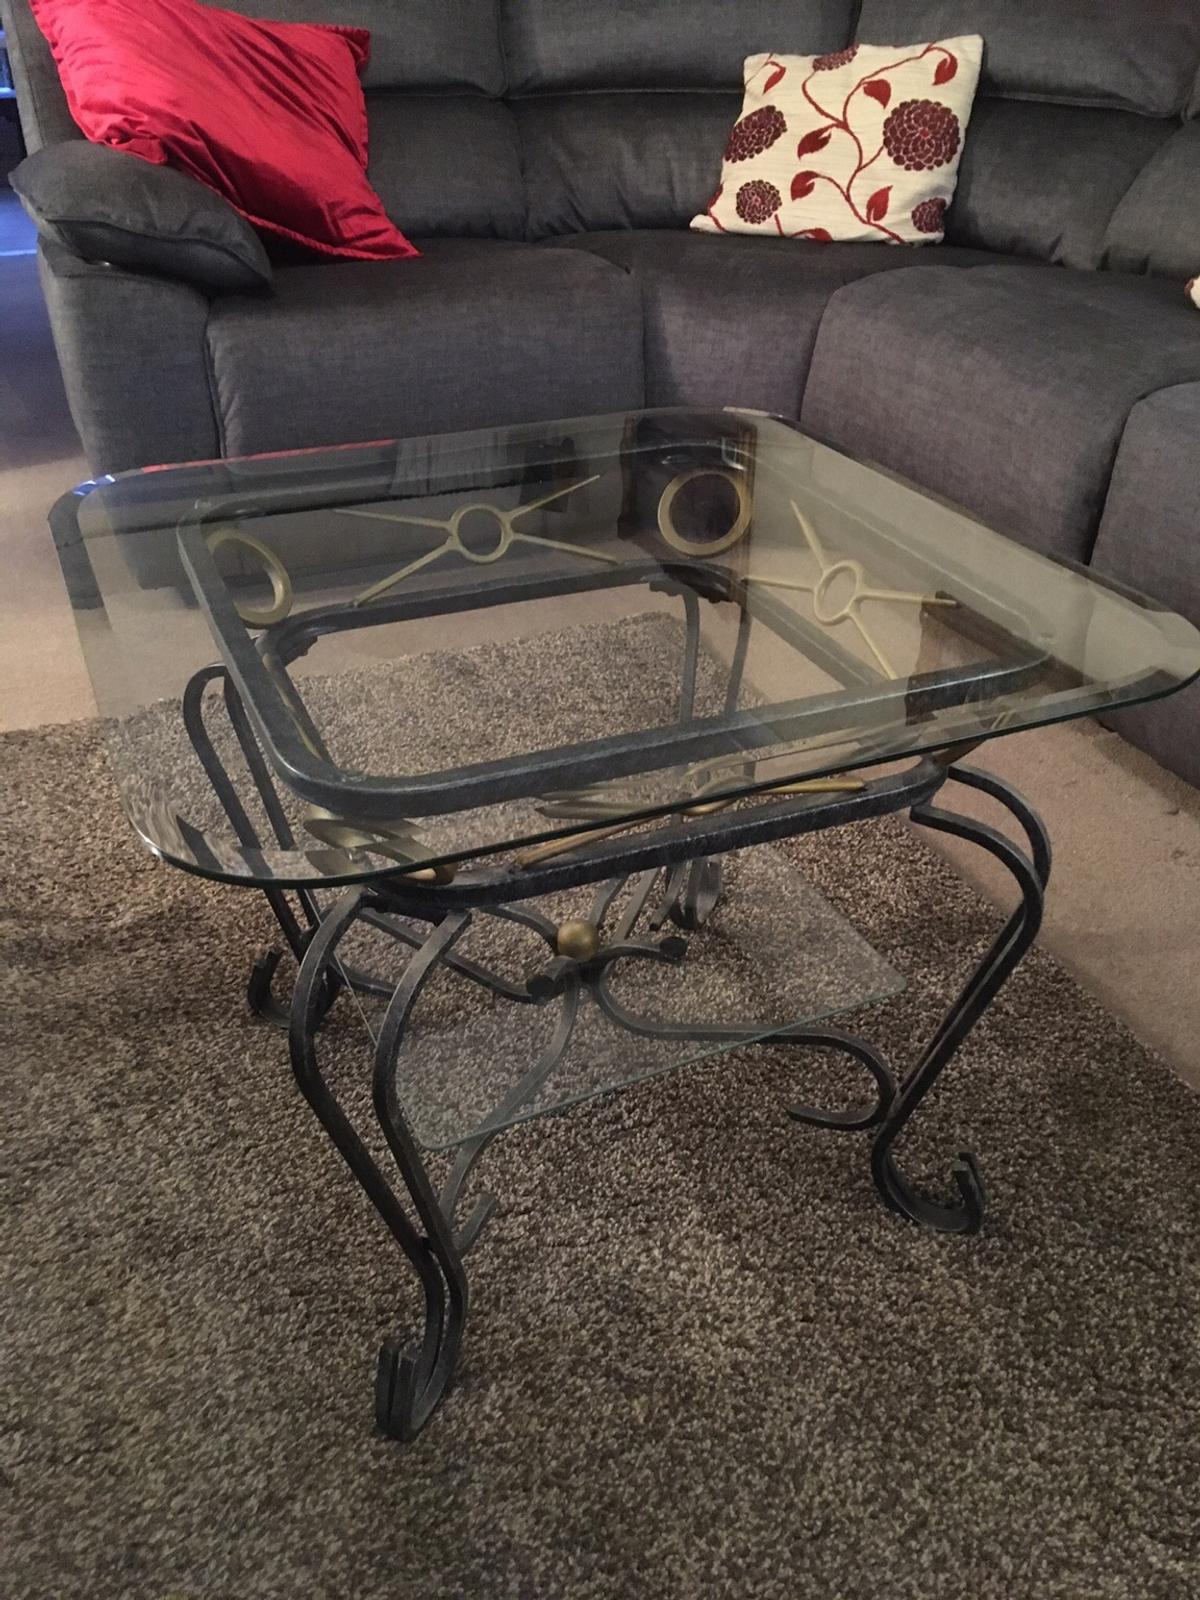 Two Glass Coffee Tables In B90 Solihull For 150 00 For Sale Shpock